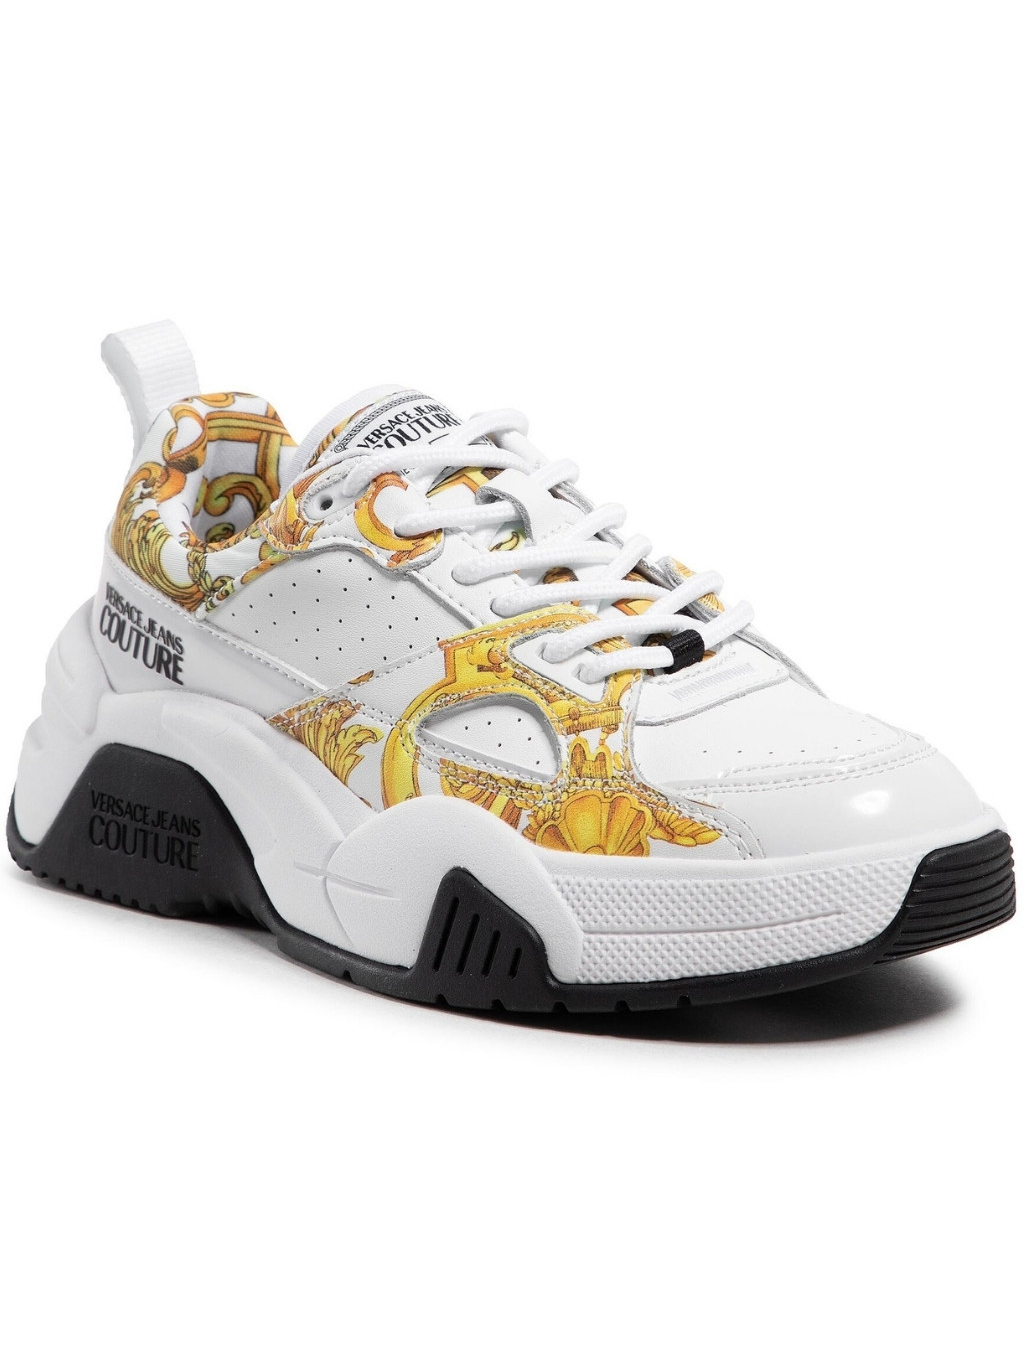 versace jeans couture fire 1 white tenisky (1)